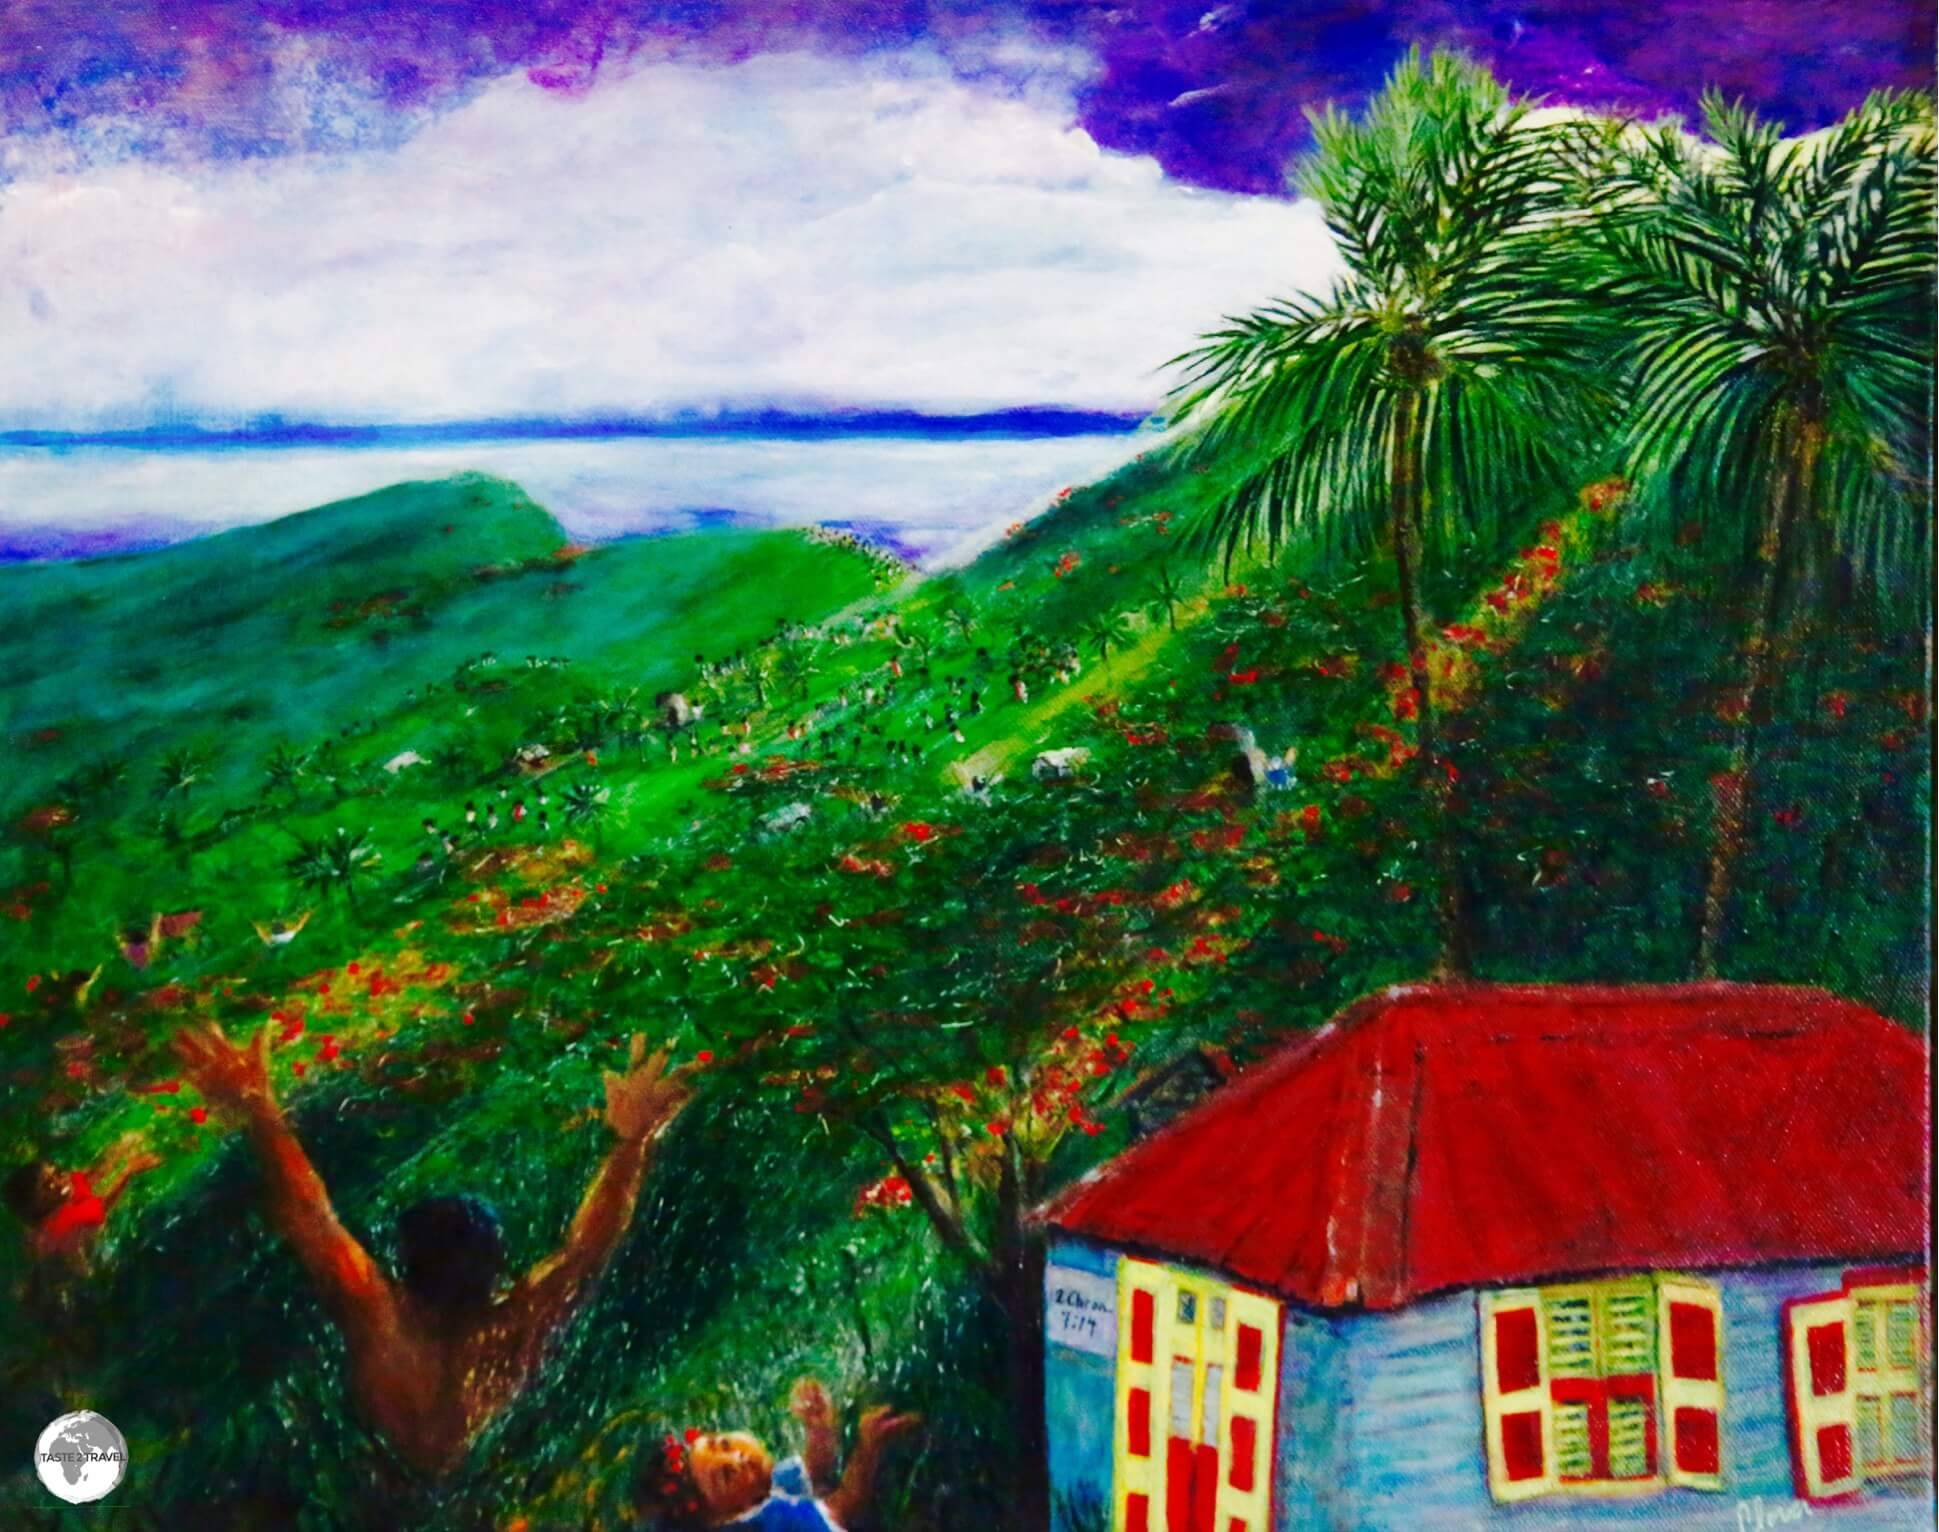 Artwork at the Hilltop Coffee House showing a typical Montserrat landscape.